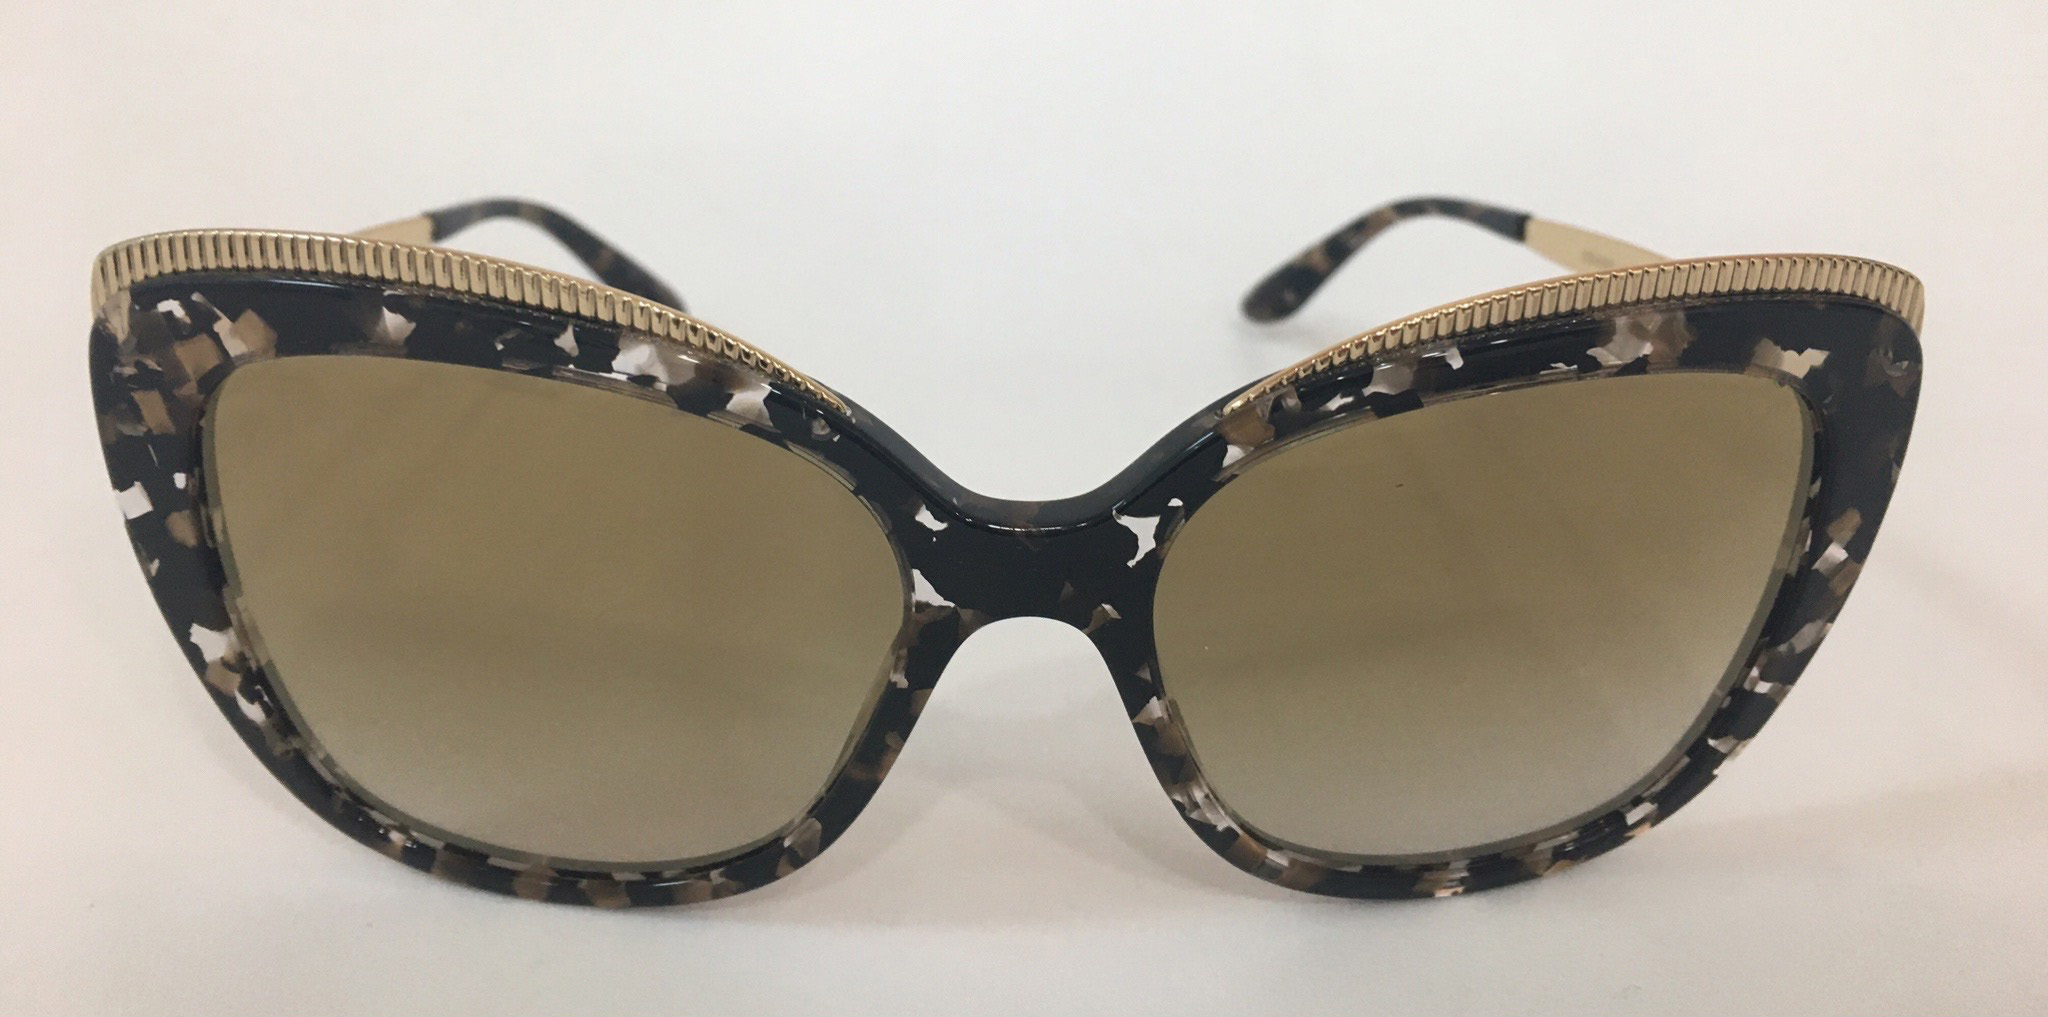 Sunglasses DG 4332 911/6E